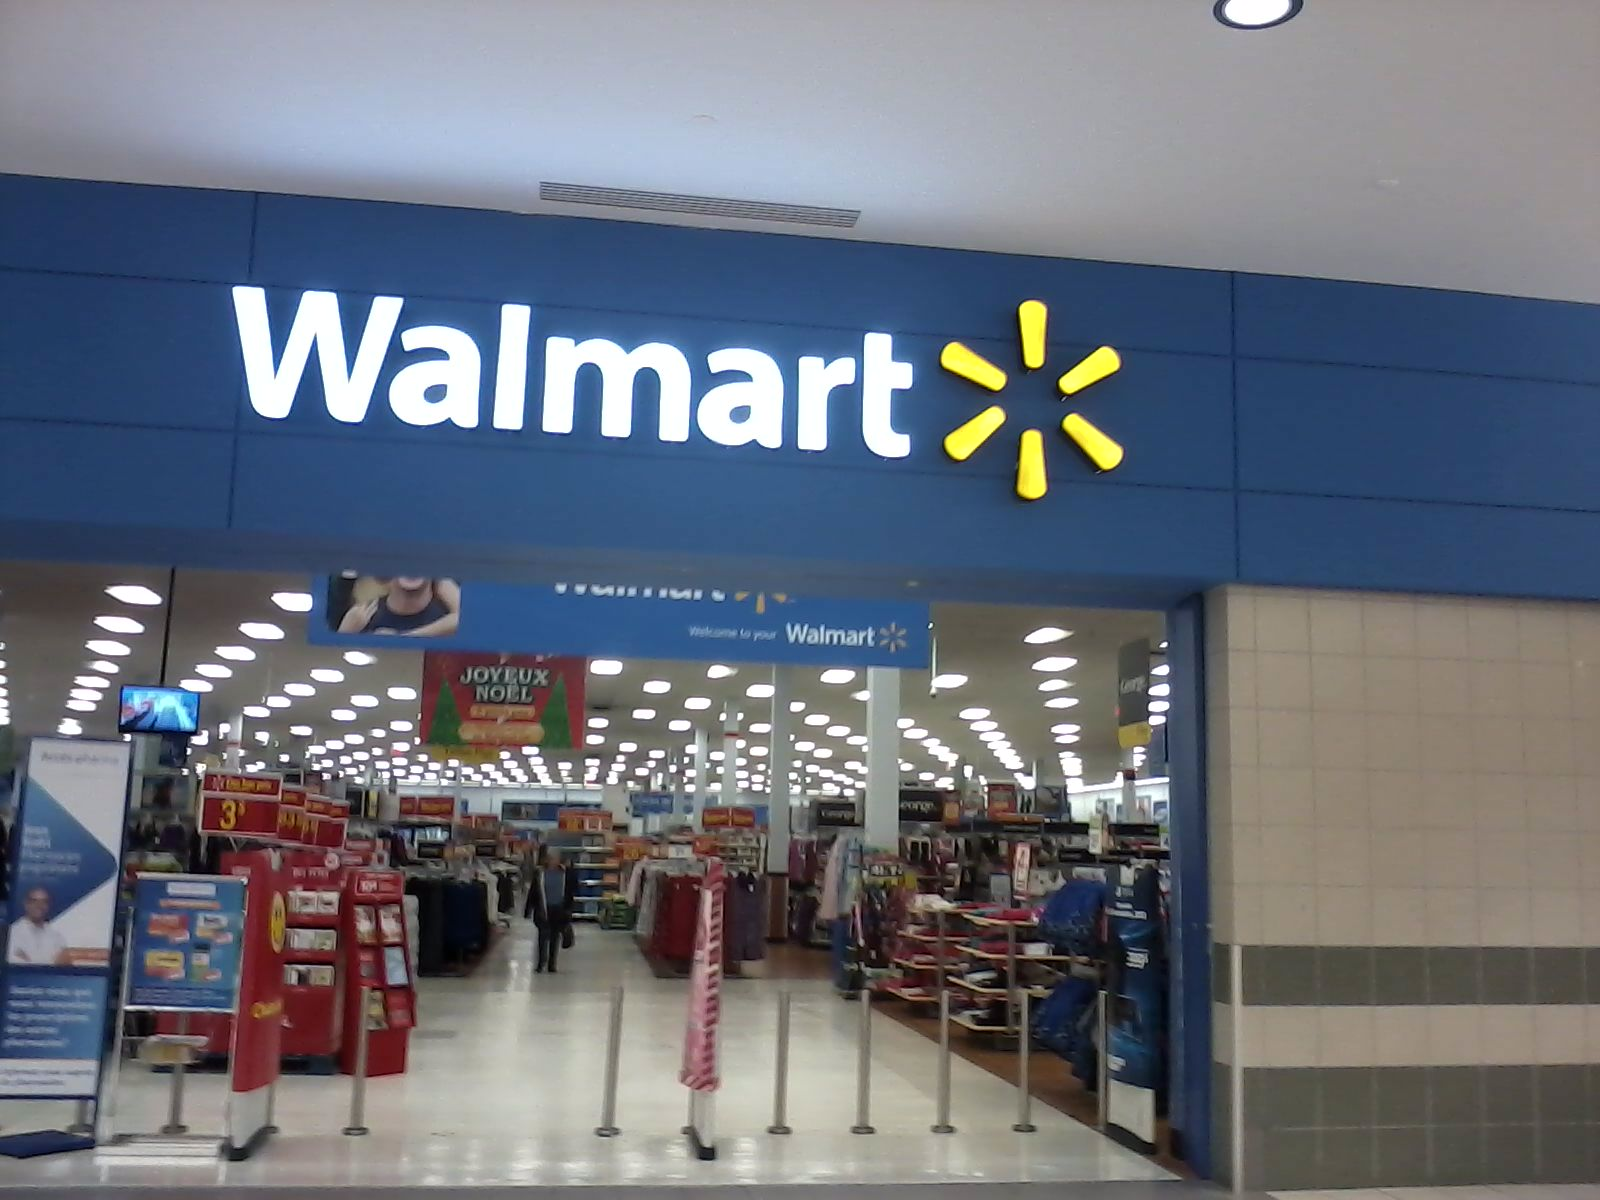 Wal mart bad for america